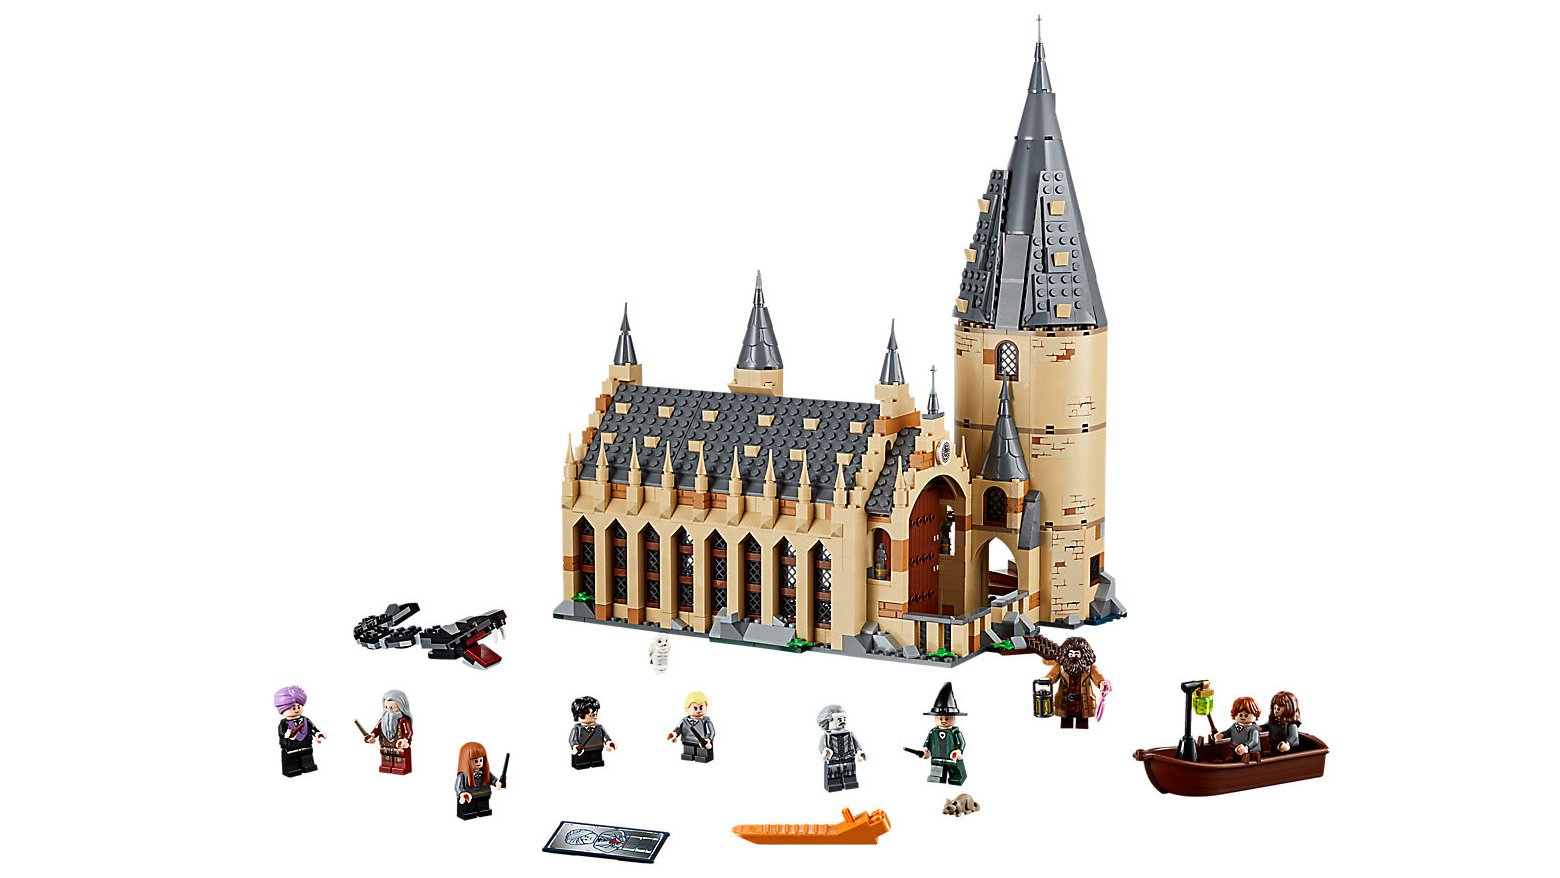 Best Lego 2019 From Star Wars To Harry Potter This Is Our Pick Of